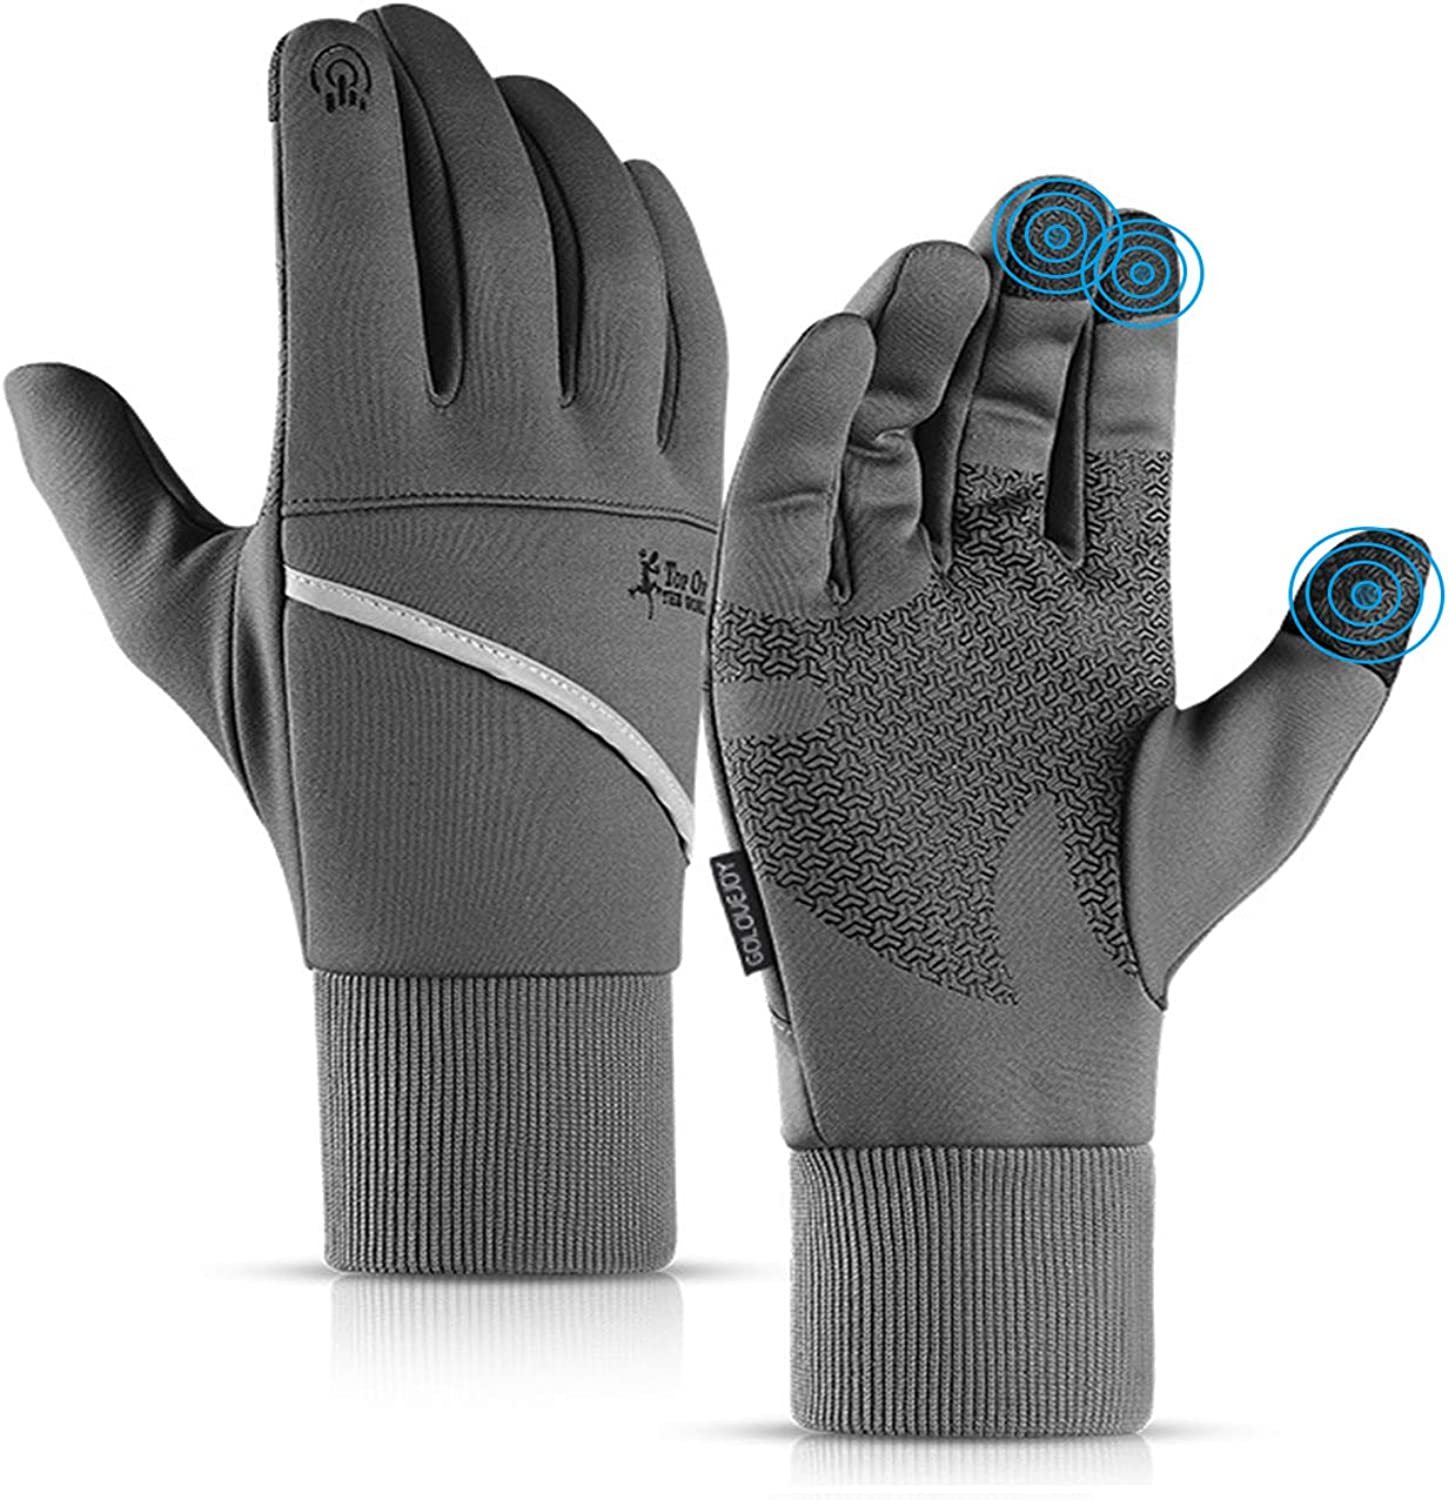 Waterproof Touch Screen Anti-Slip Gloves for Men Women,Running Warm Gloves,Driving Night Reflective Pocket Gloves DHSO Winter Cycling Gloves Gray, X-Large